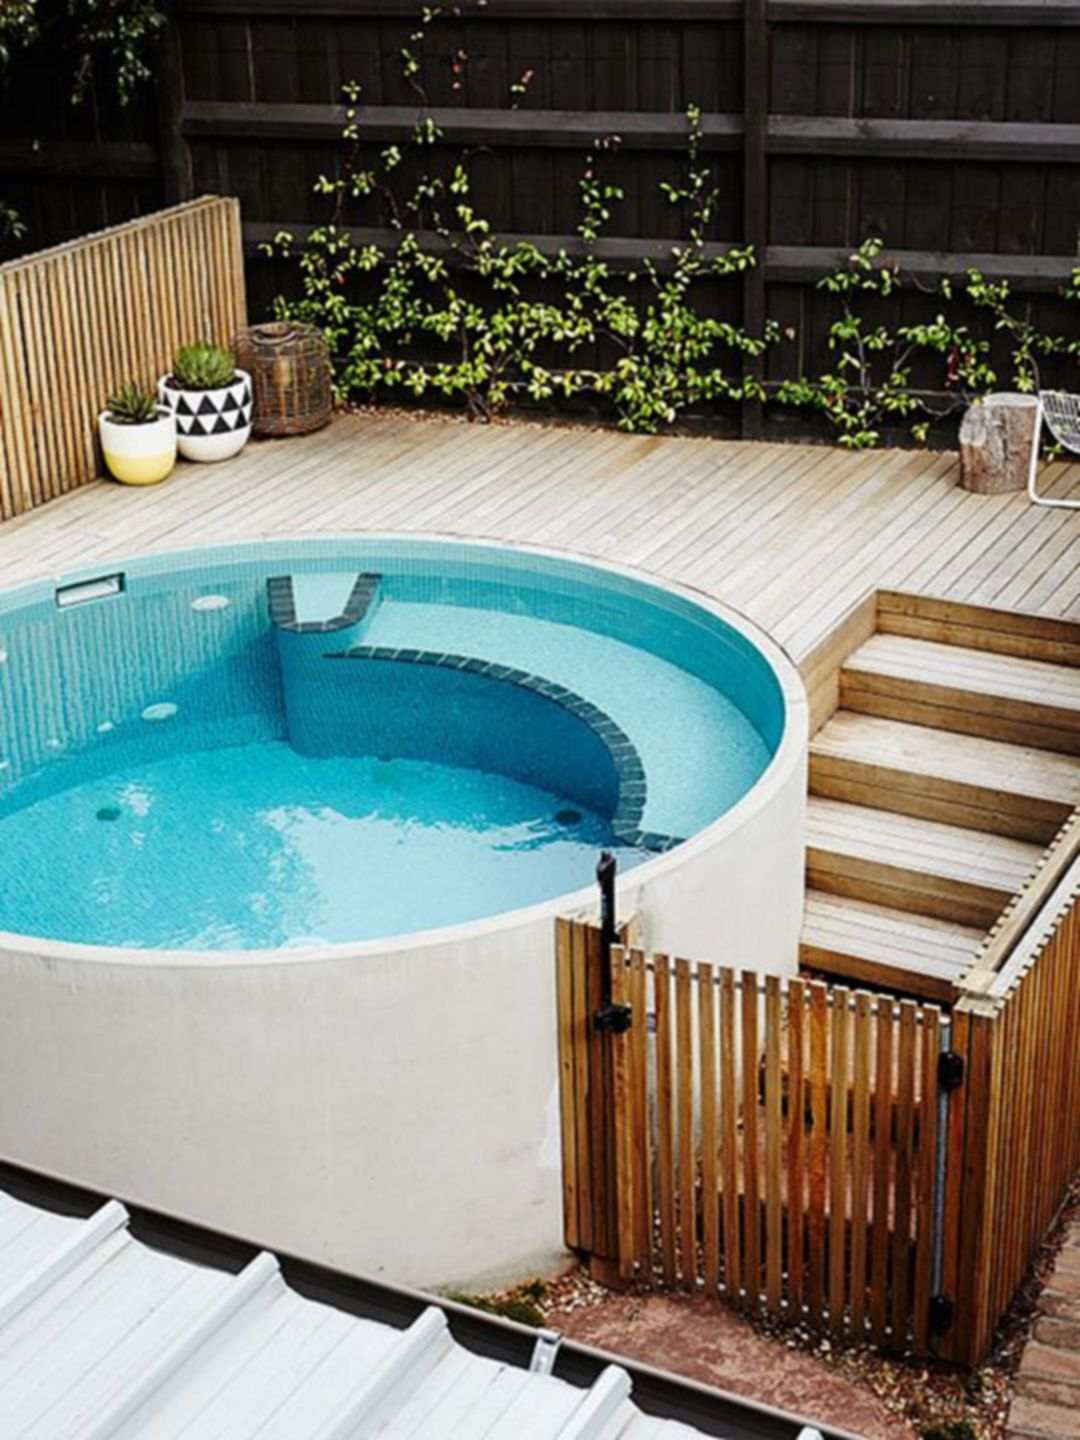 Small Plunge Pool Designs1 Small Backyard Pools Small Swimming